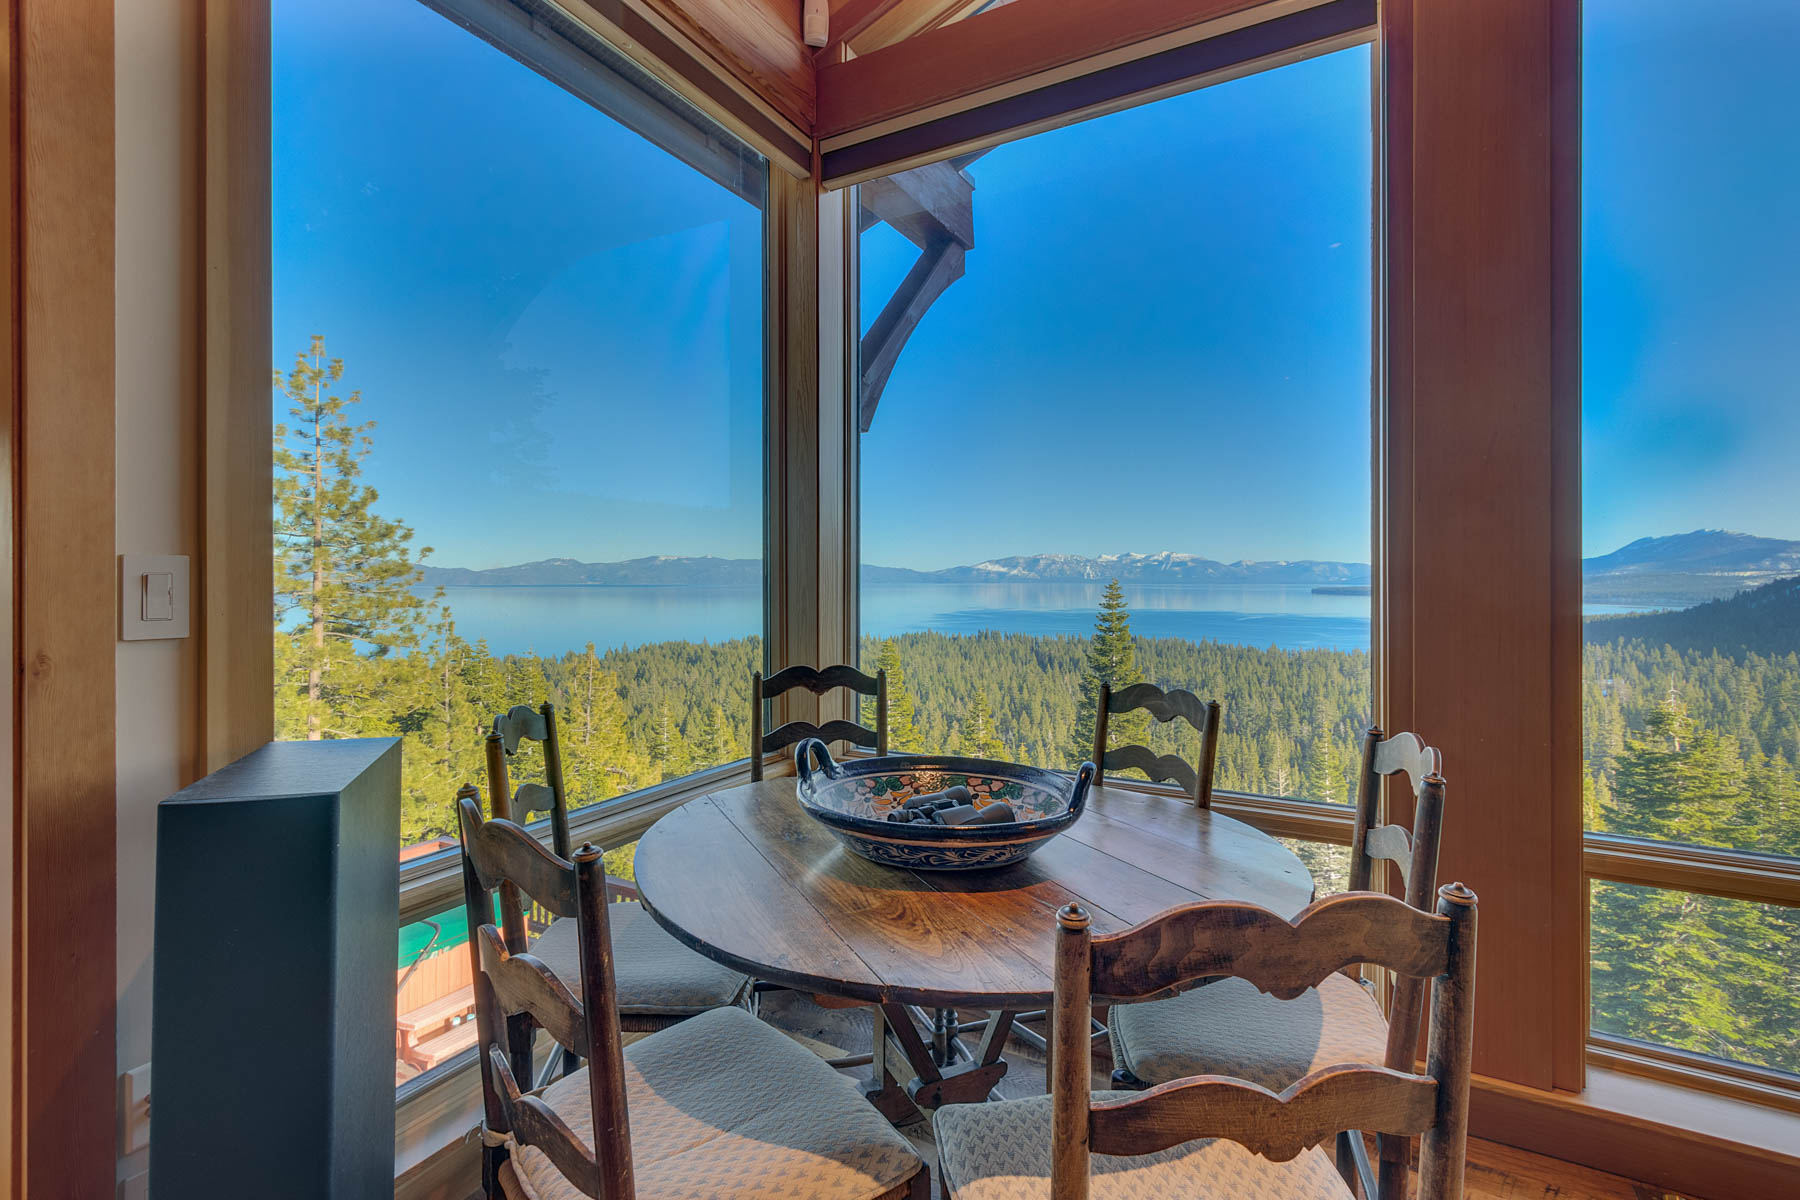 Property for Active at The Crown Jewel of Talmont Estates 1855 Tahoe Park Heights Dr Tahoe City, California 96145 United States